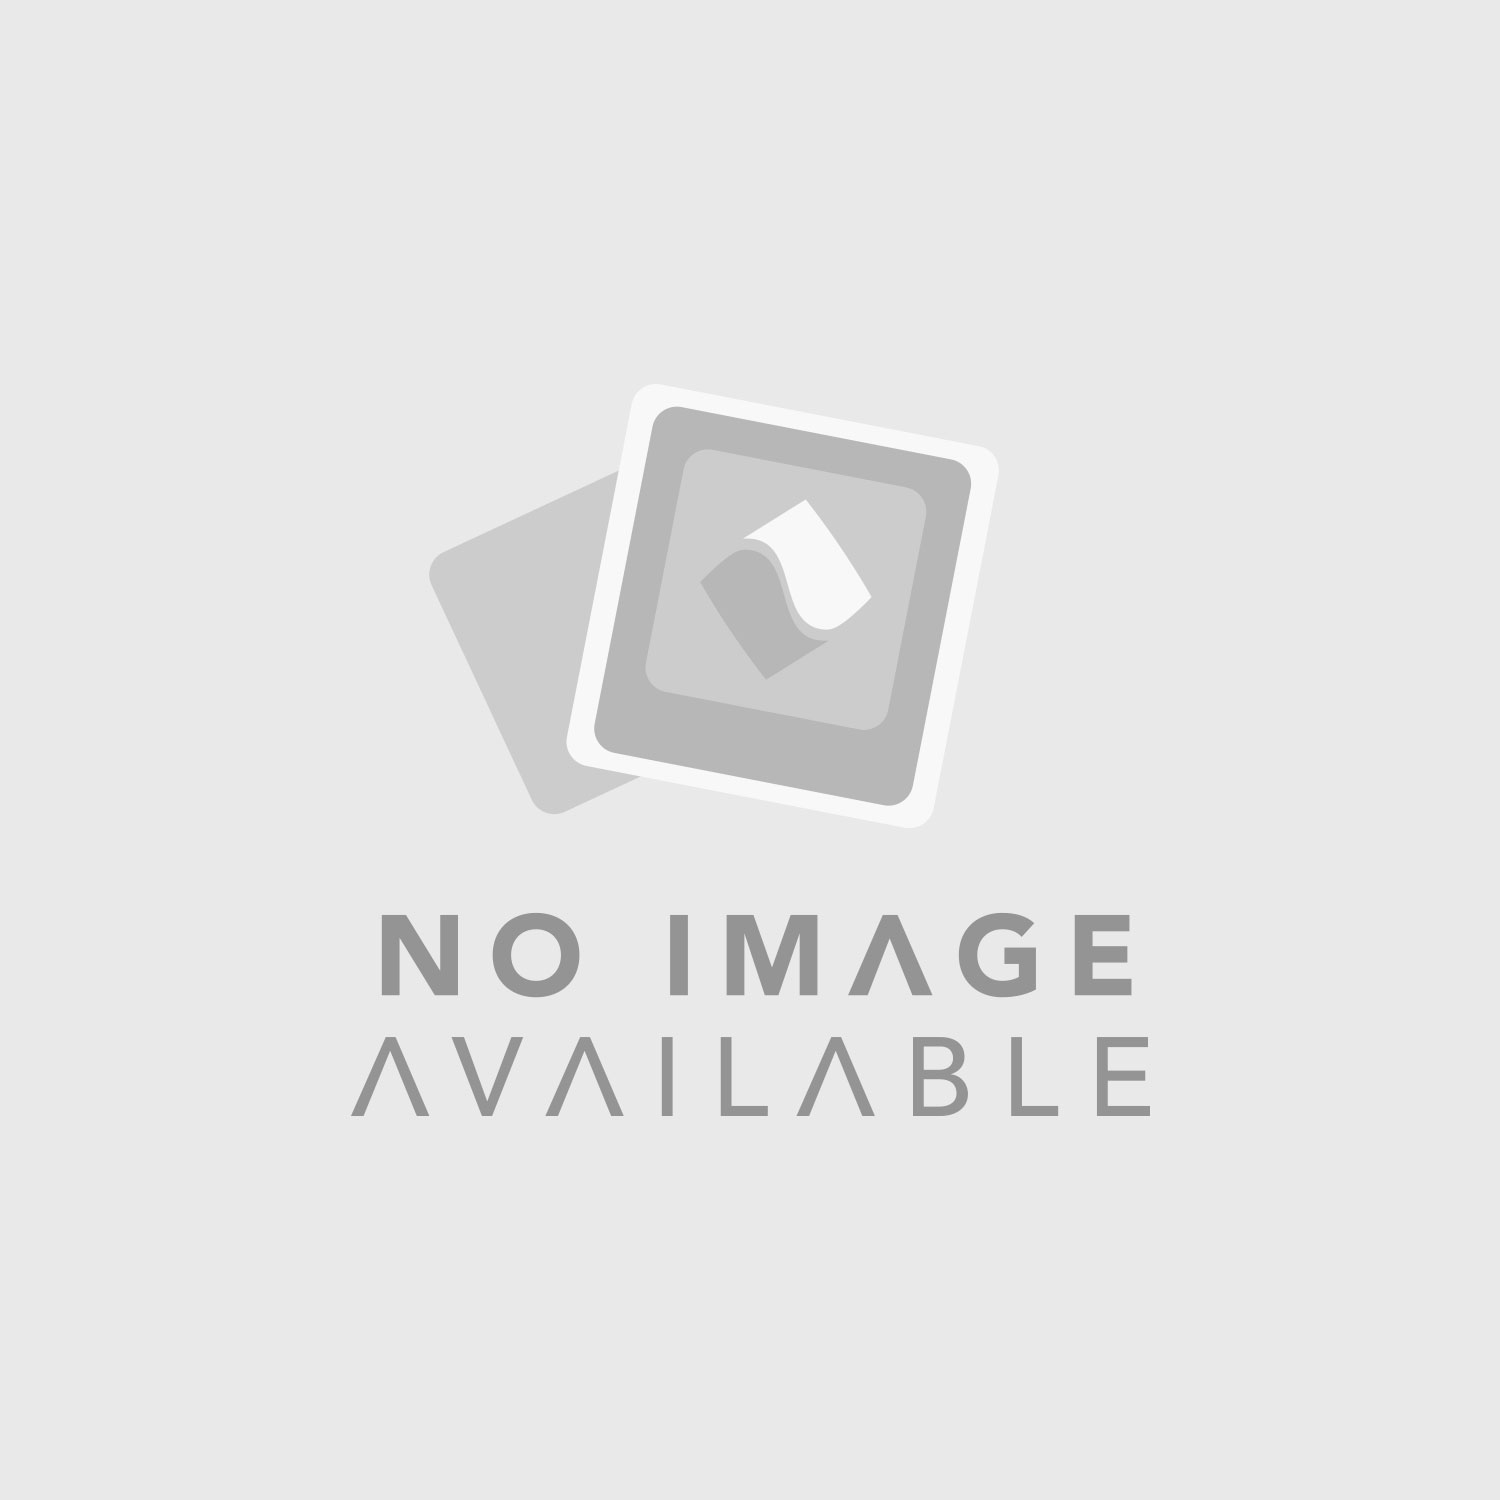 Chauvet DJ Quick Dissipating Fog Fluid (1 Gallon)